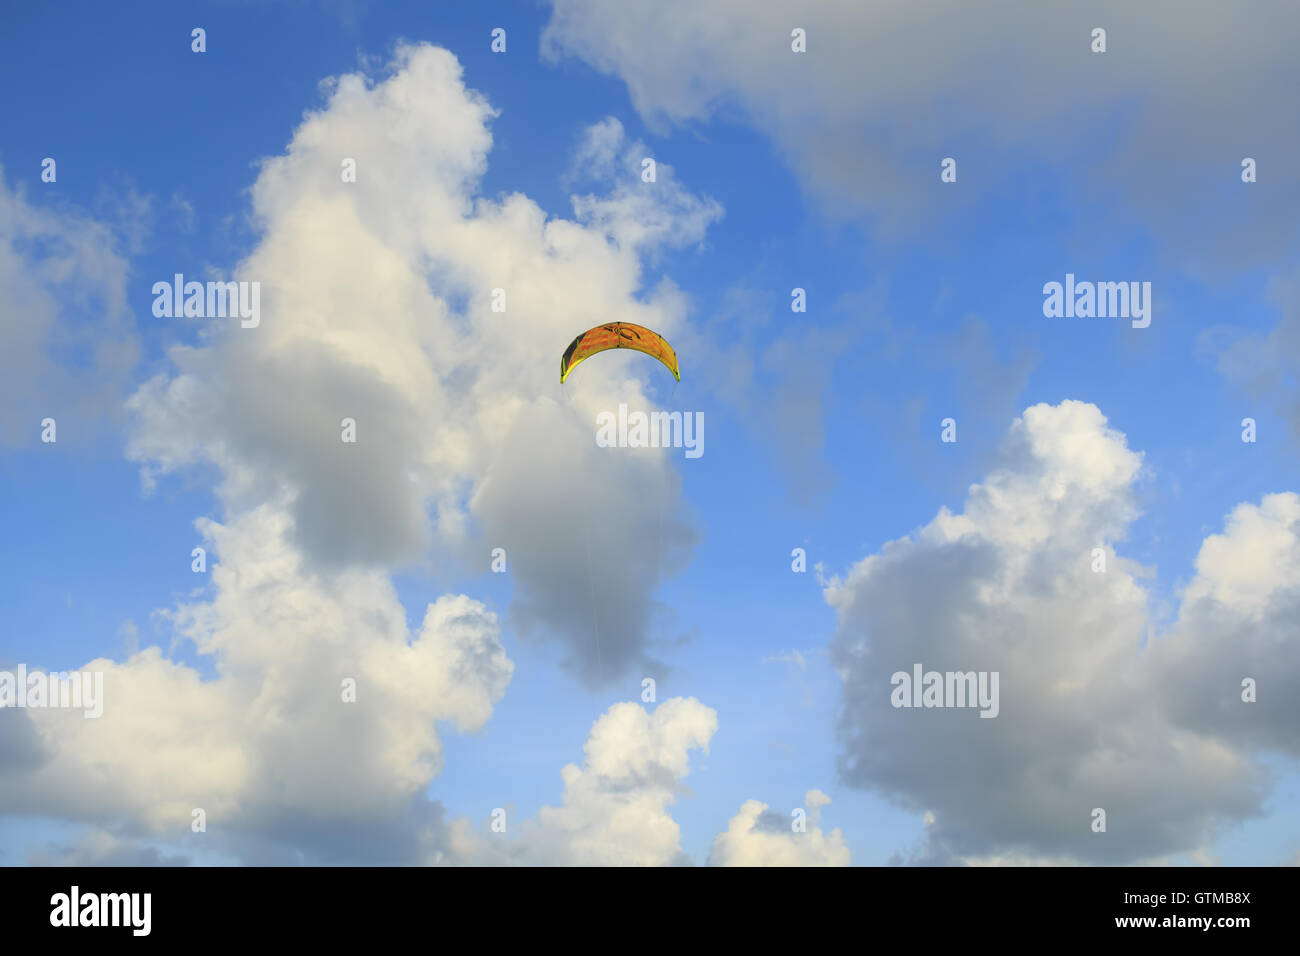 Clouds, sky, background, clouds, blue, nature, white clouds, the environment, the light forms a bright, cloudy, - Stock Image